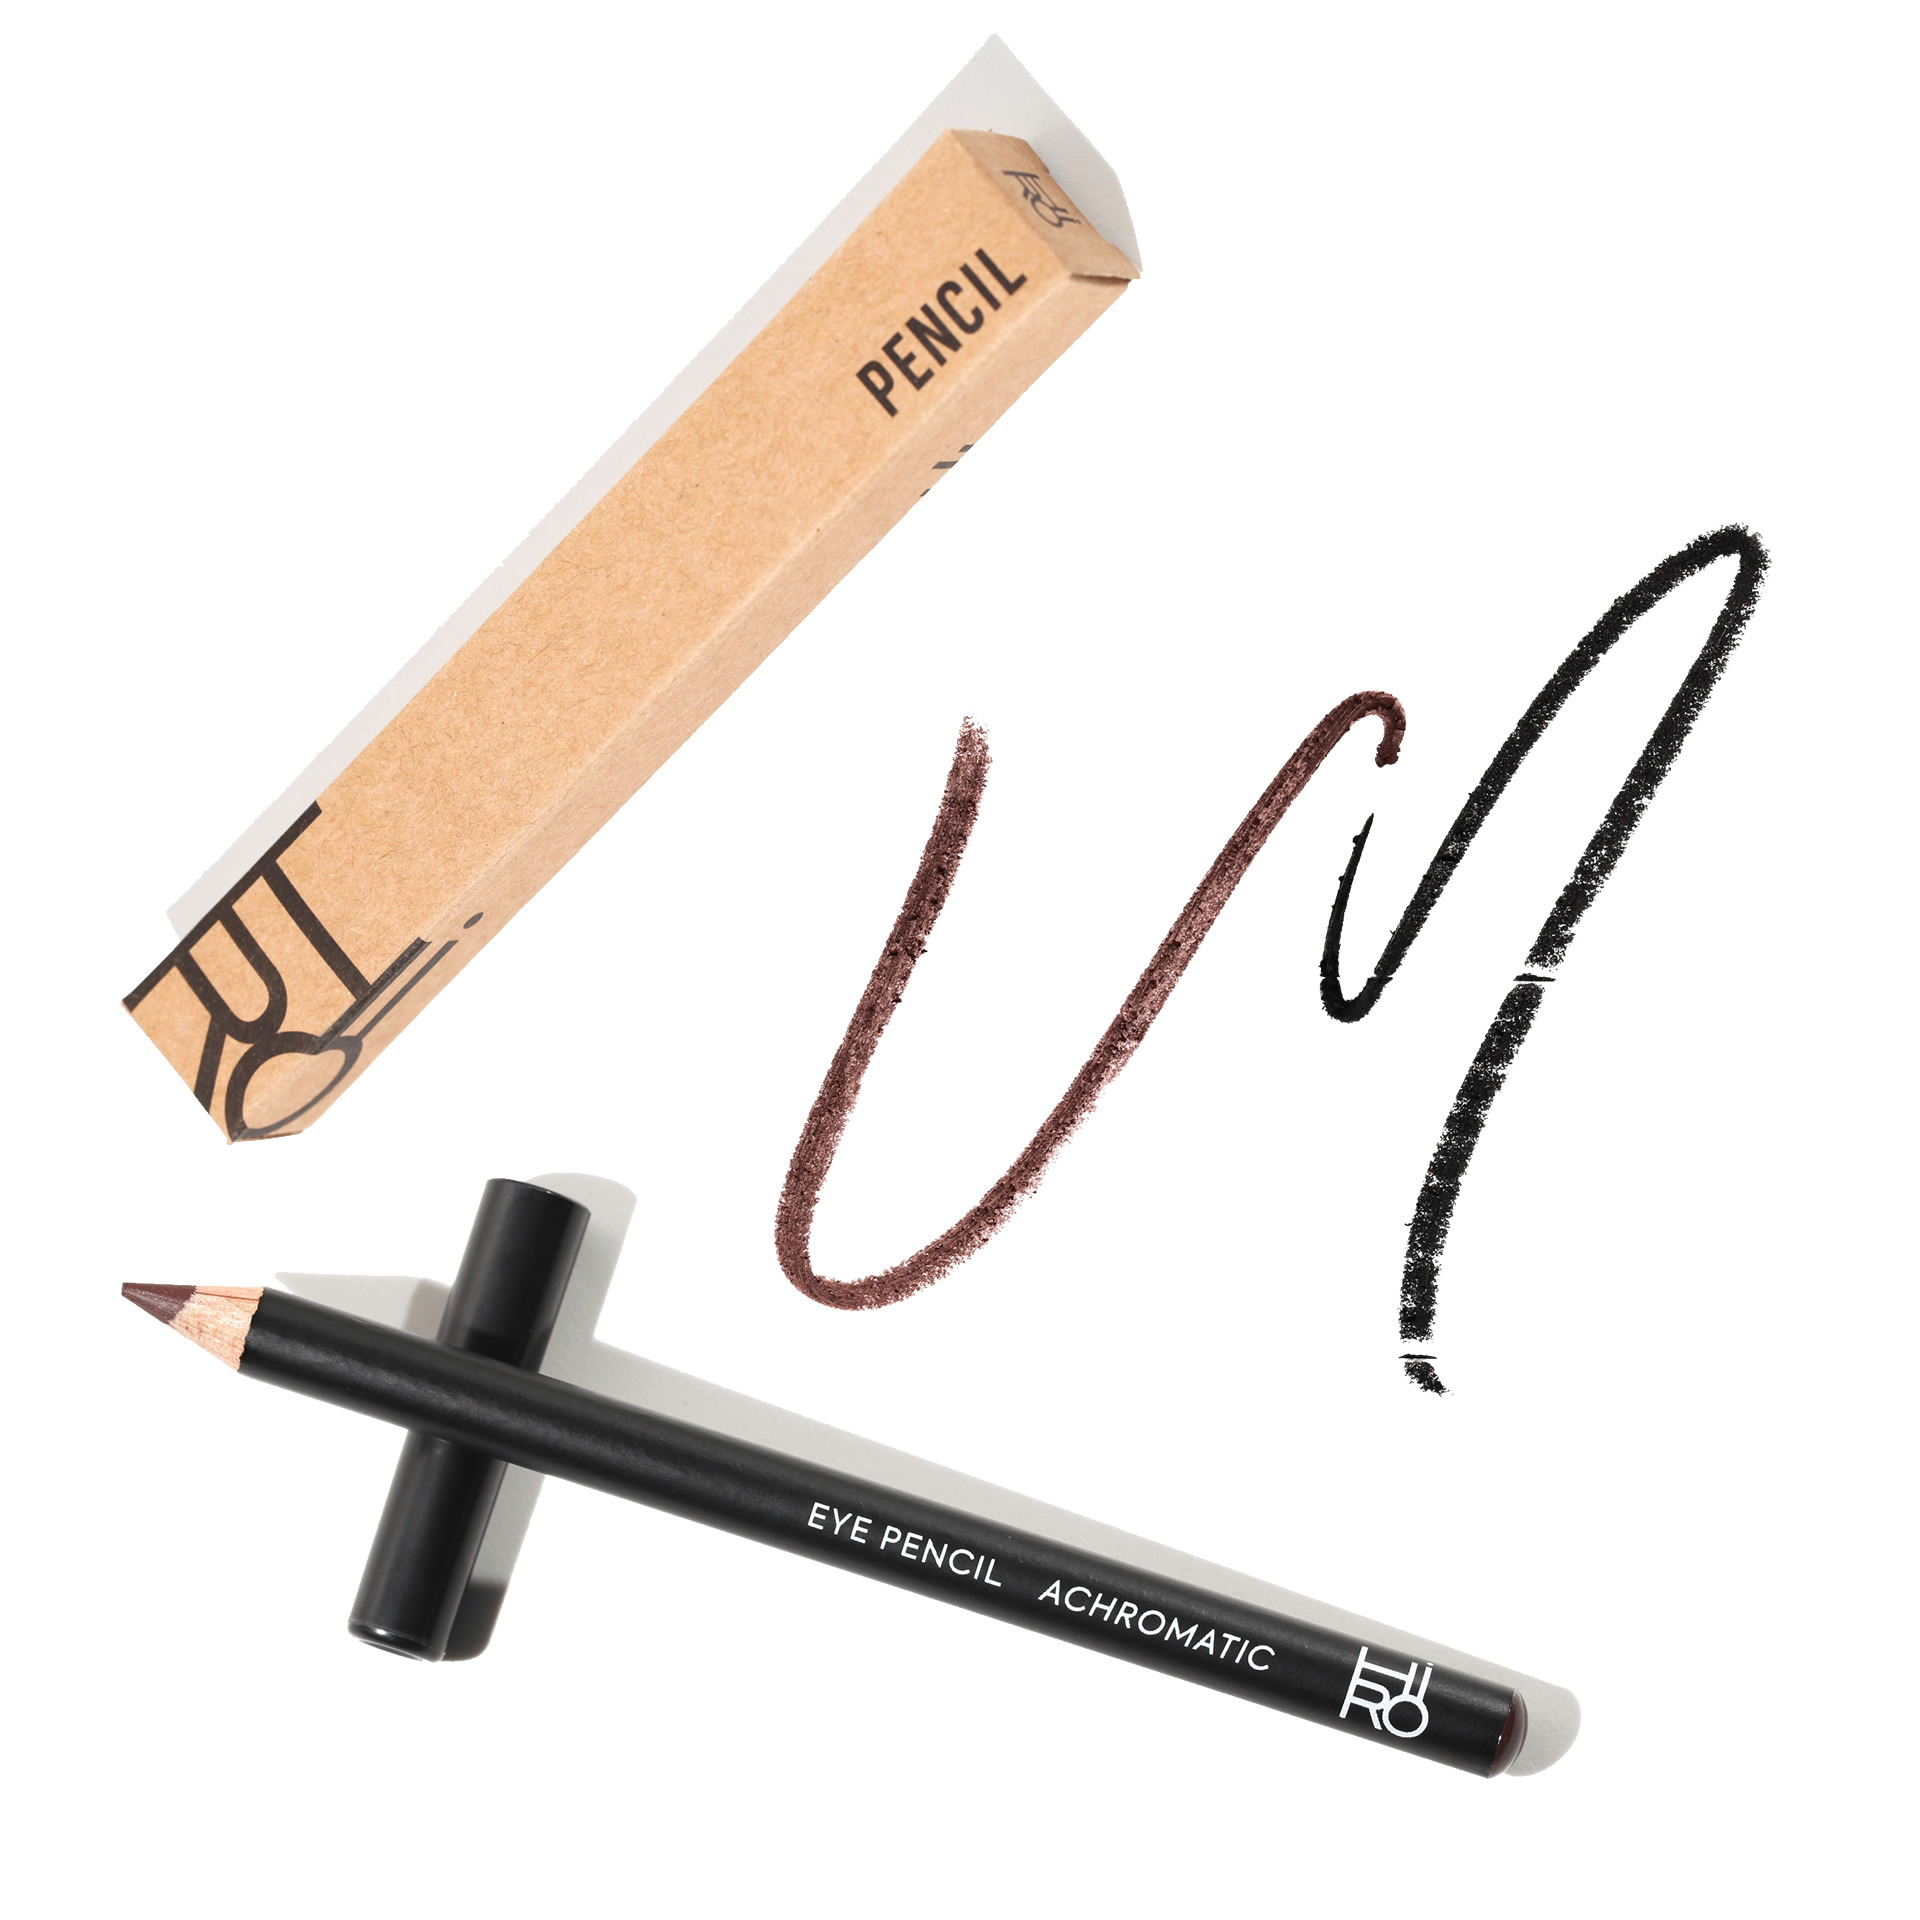 Hiro Organic, Natural, Vegan Mascara